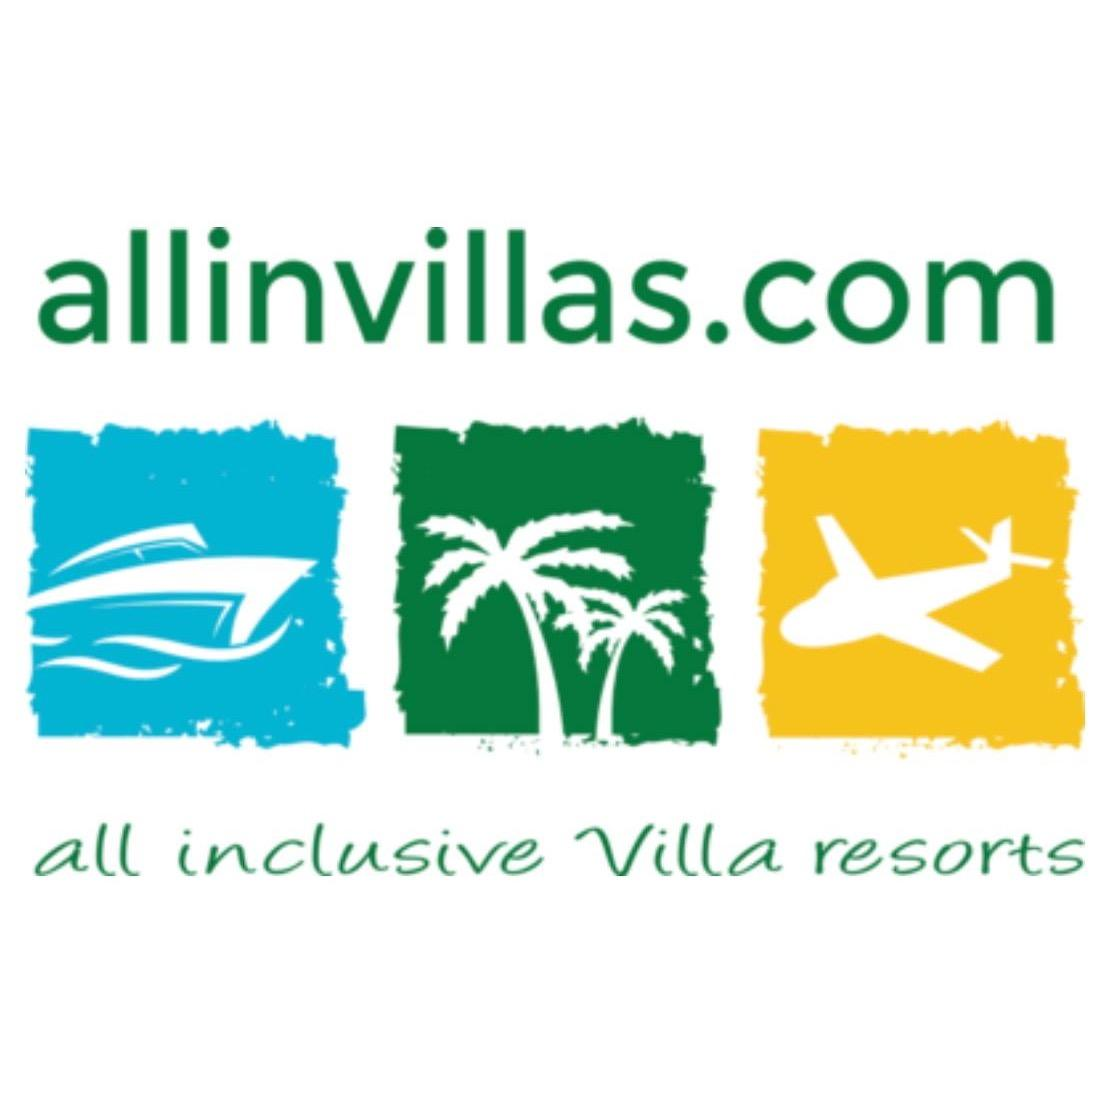 ALLinVillas